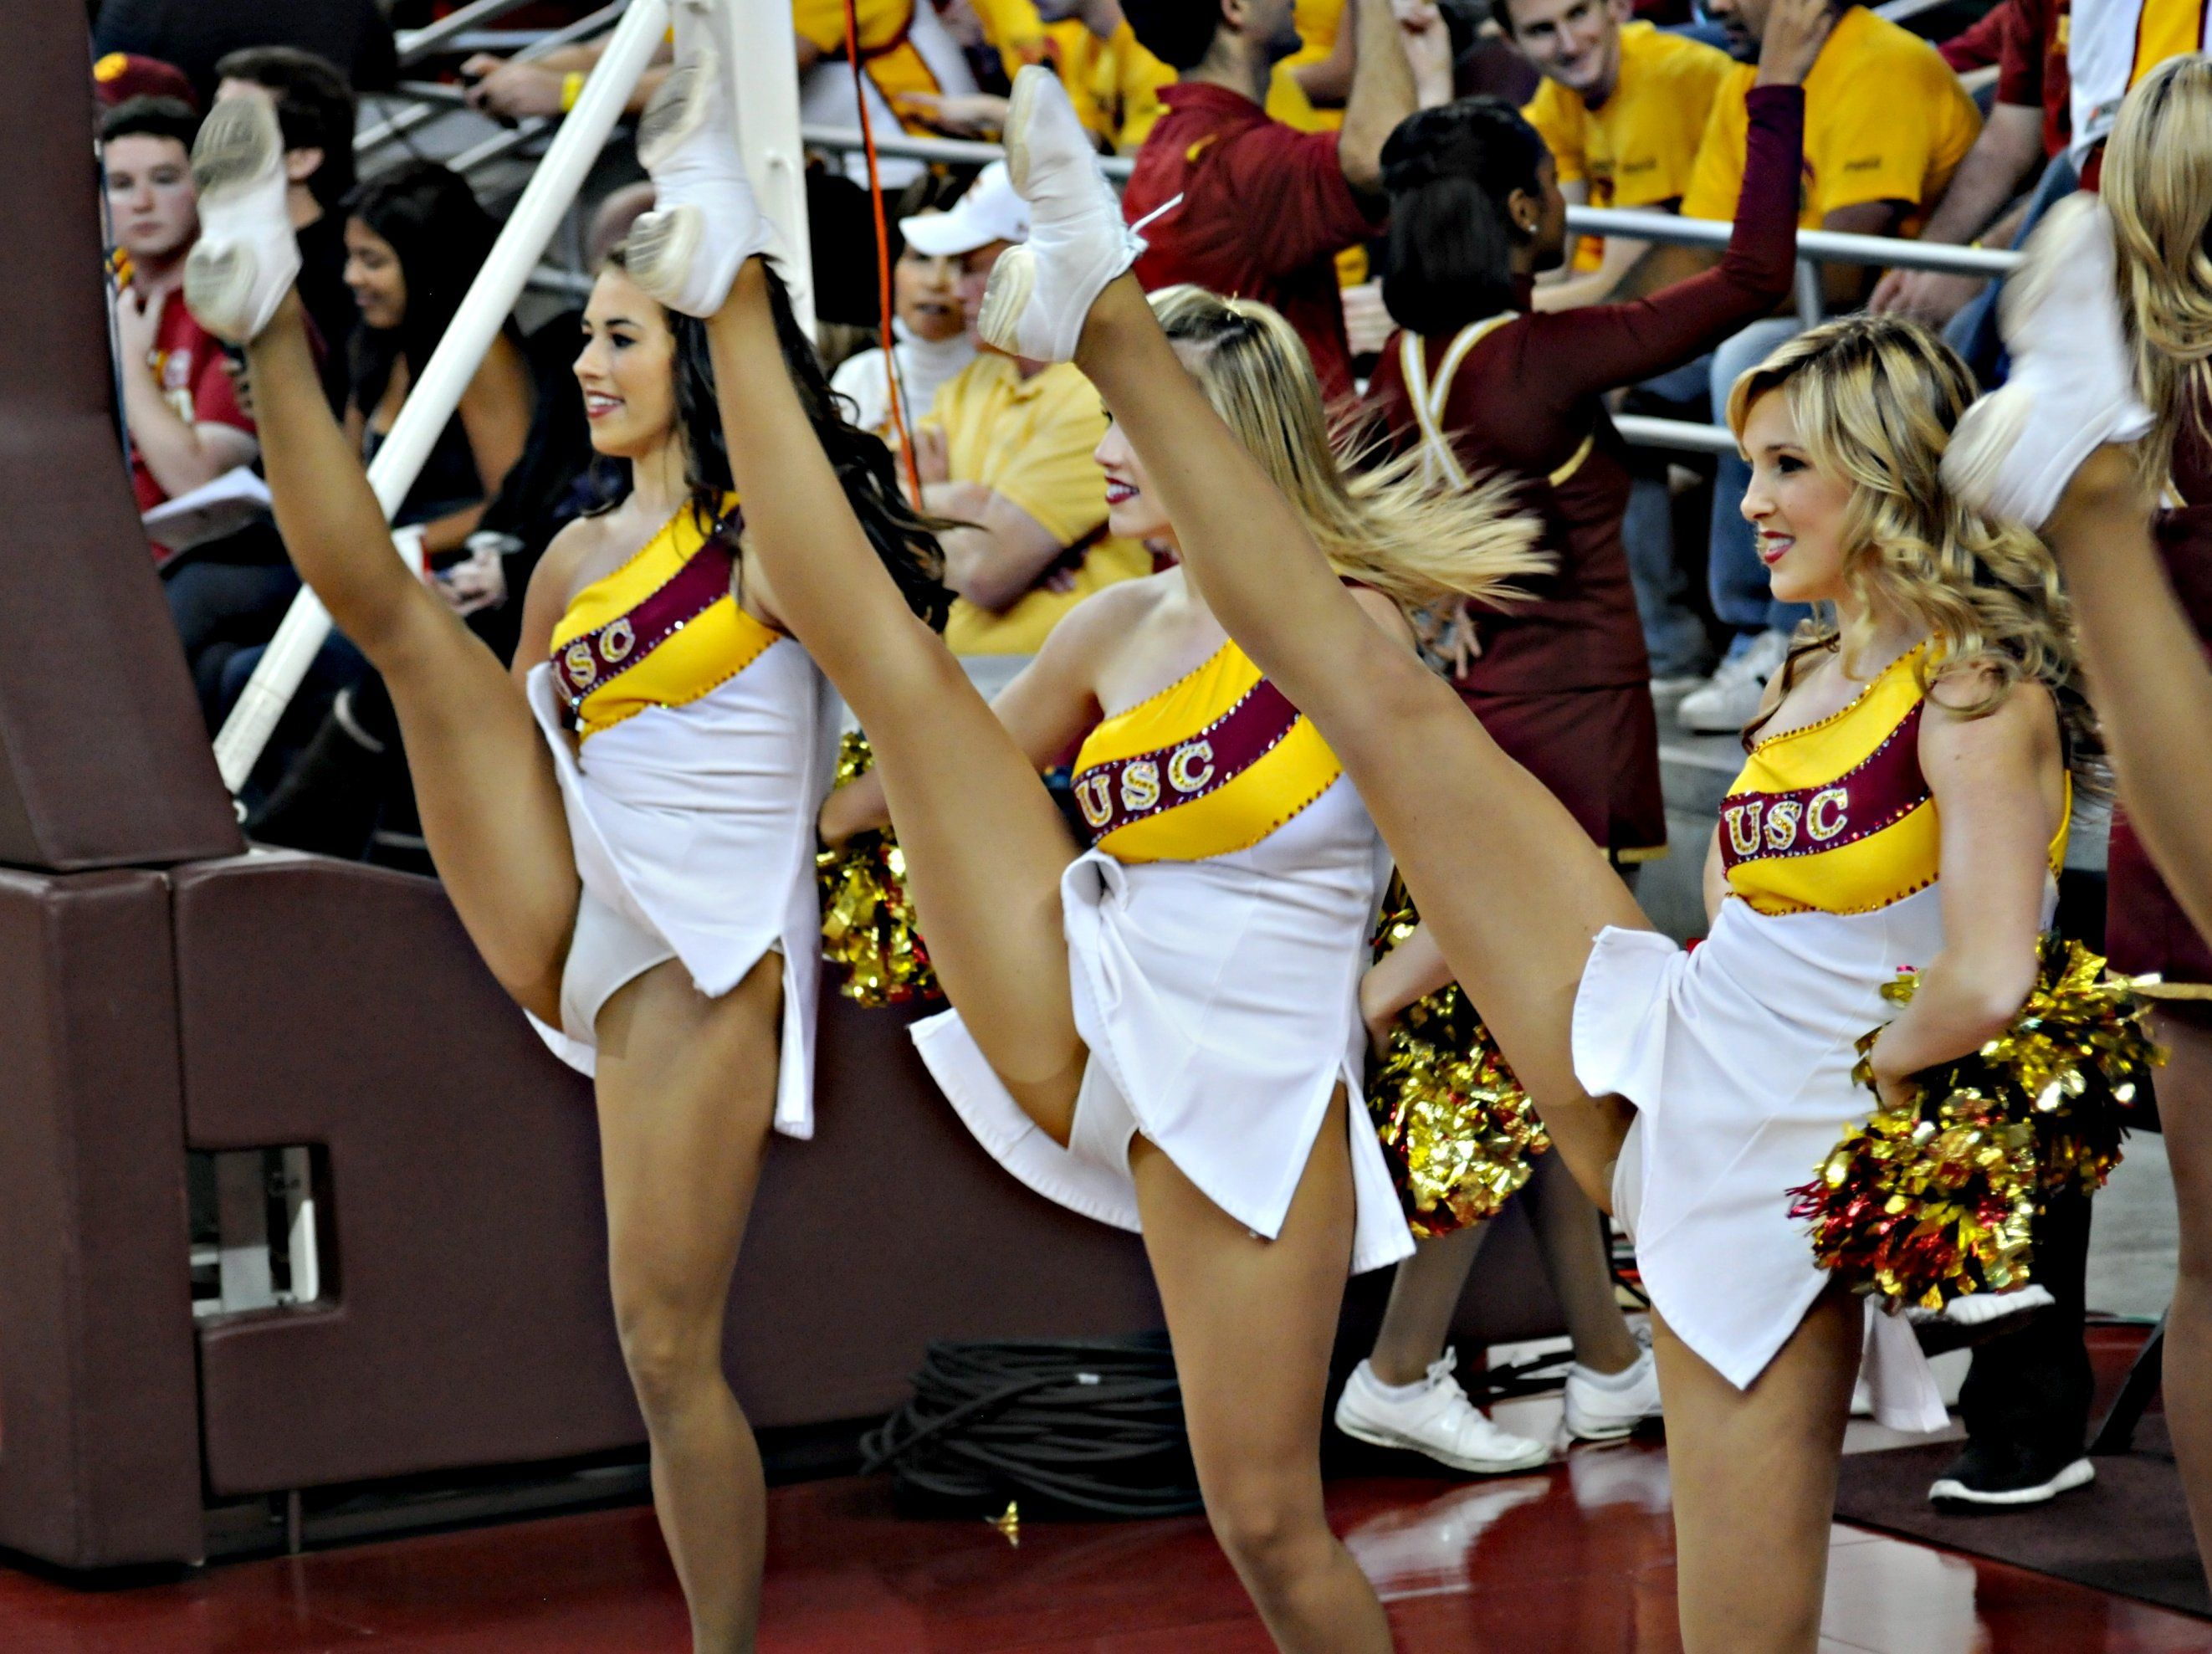 cheerleaders-bending-over-asses-usc